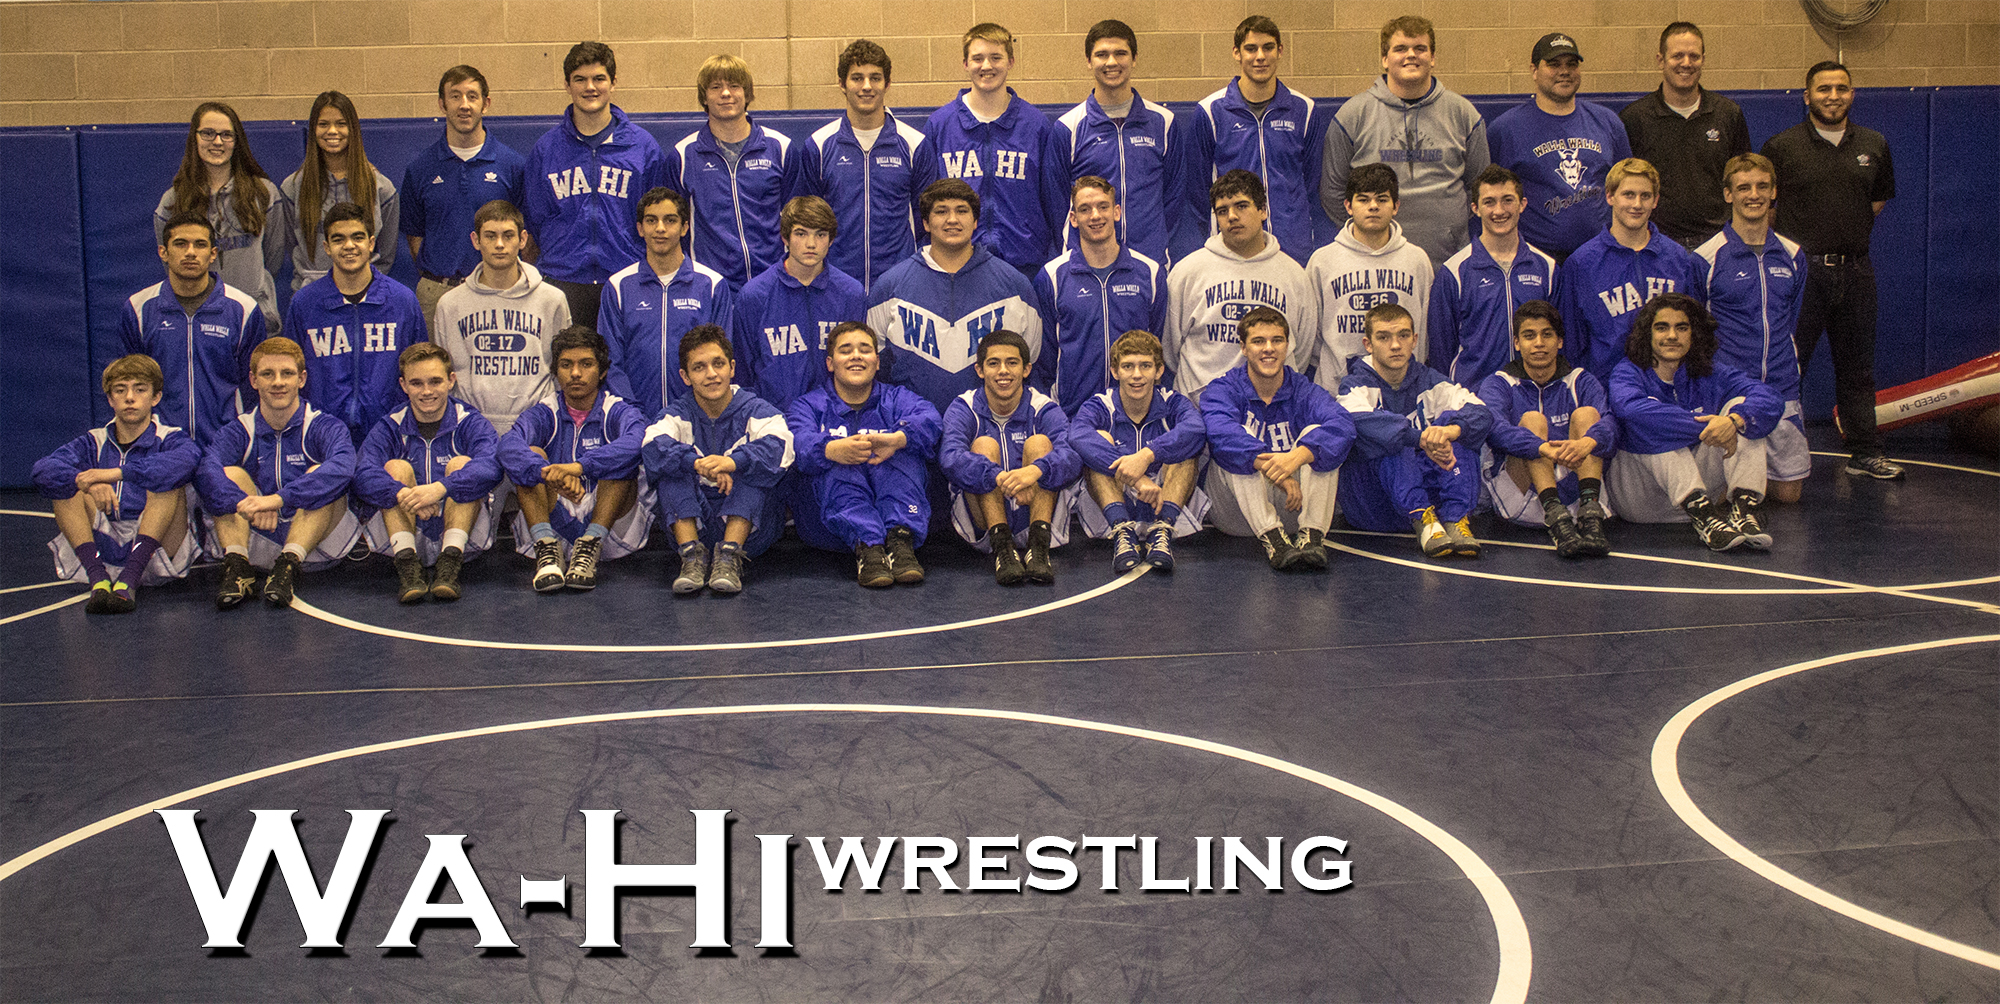 images/athletics/Wrestling/Wrestling_team_2015-2016.jpg